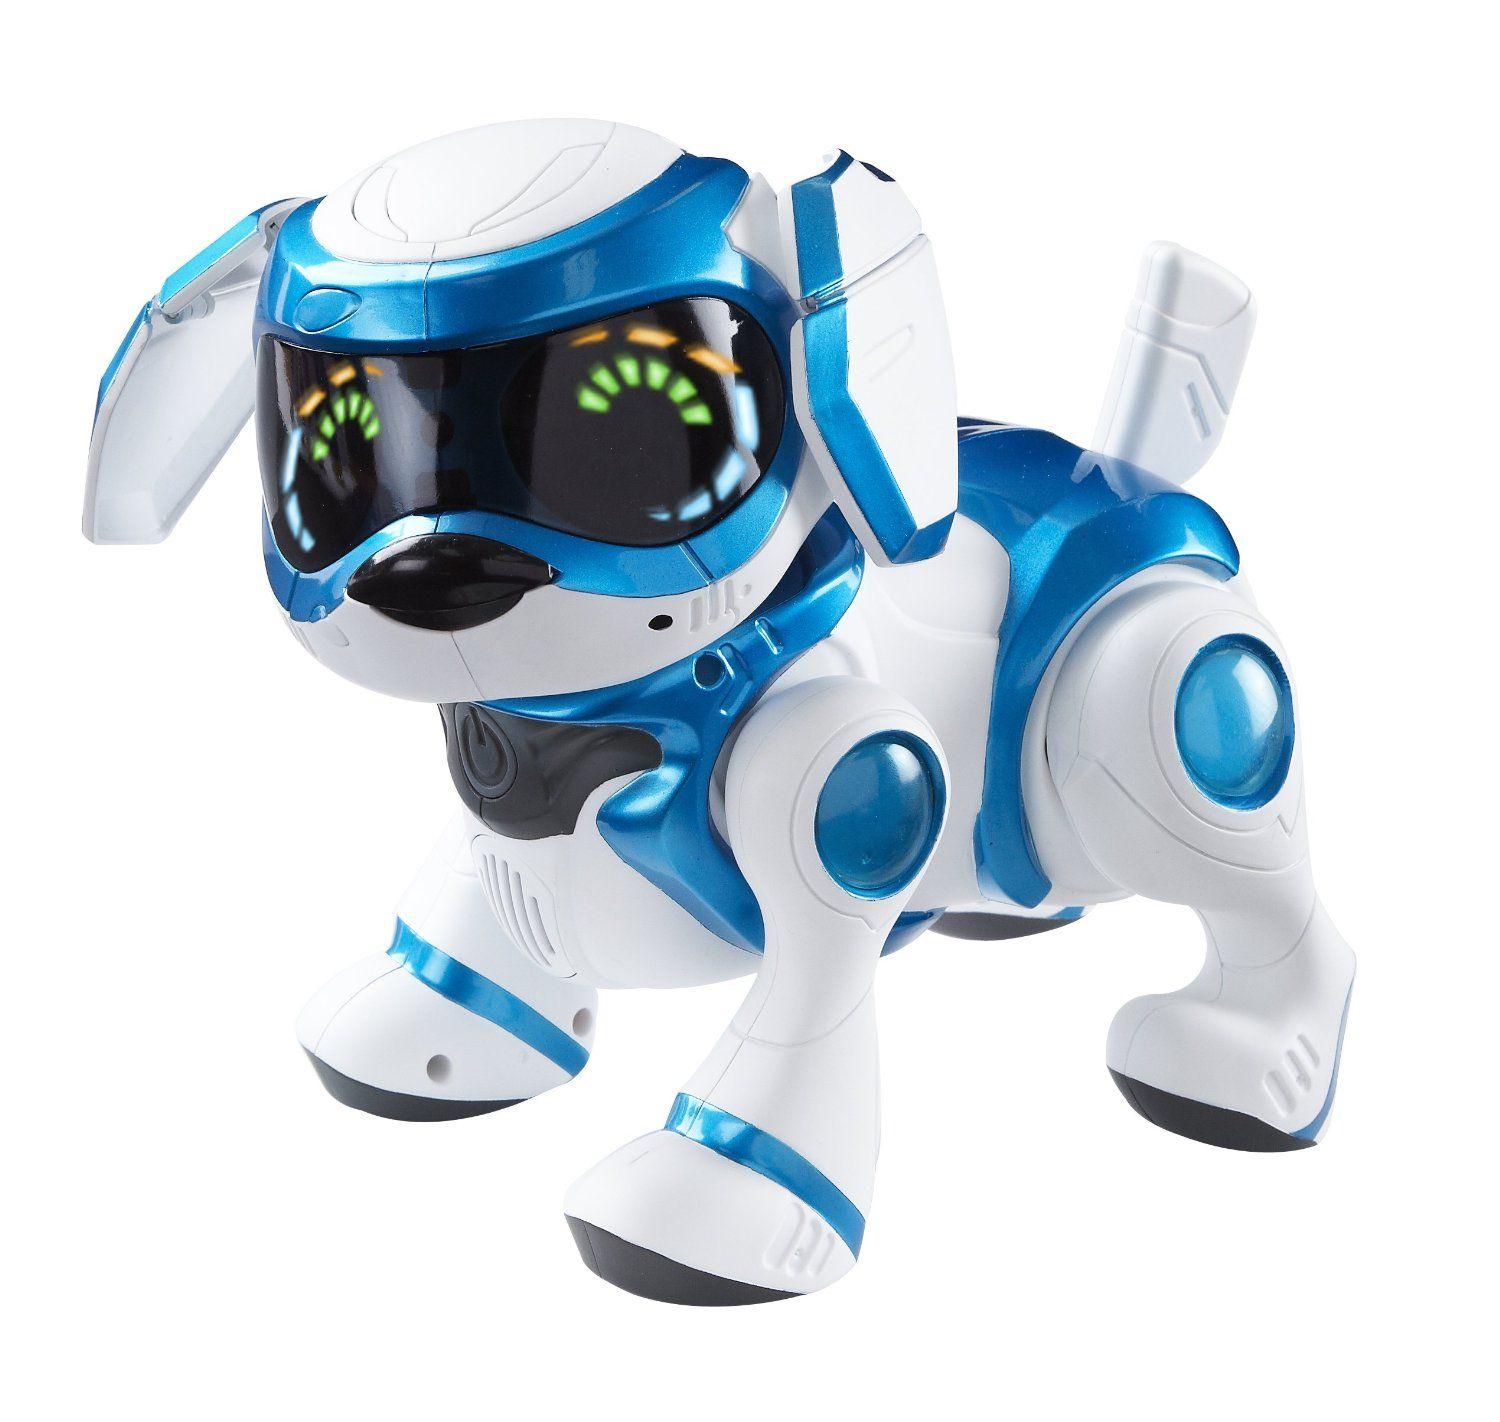 The Teksta Robot Dog Toy Is A Life Like Robot Dog That Reacts And